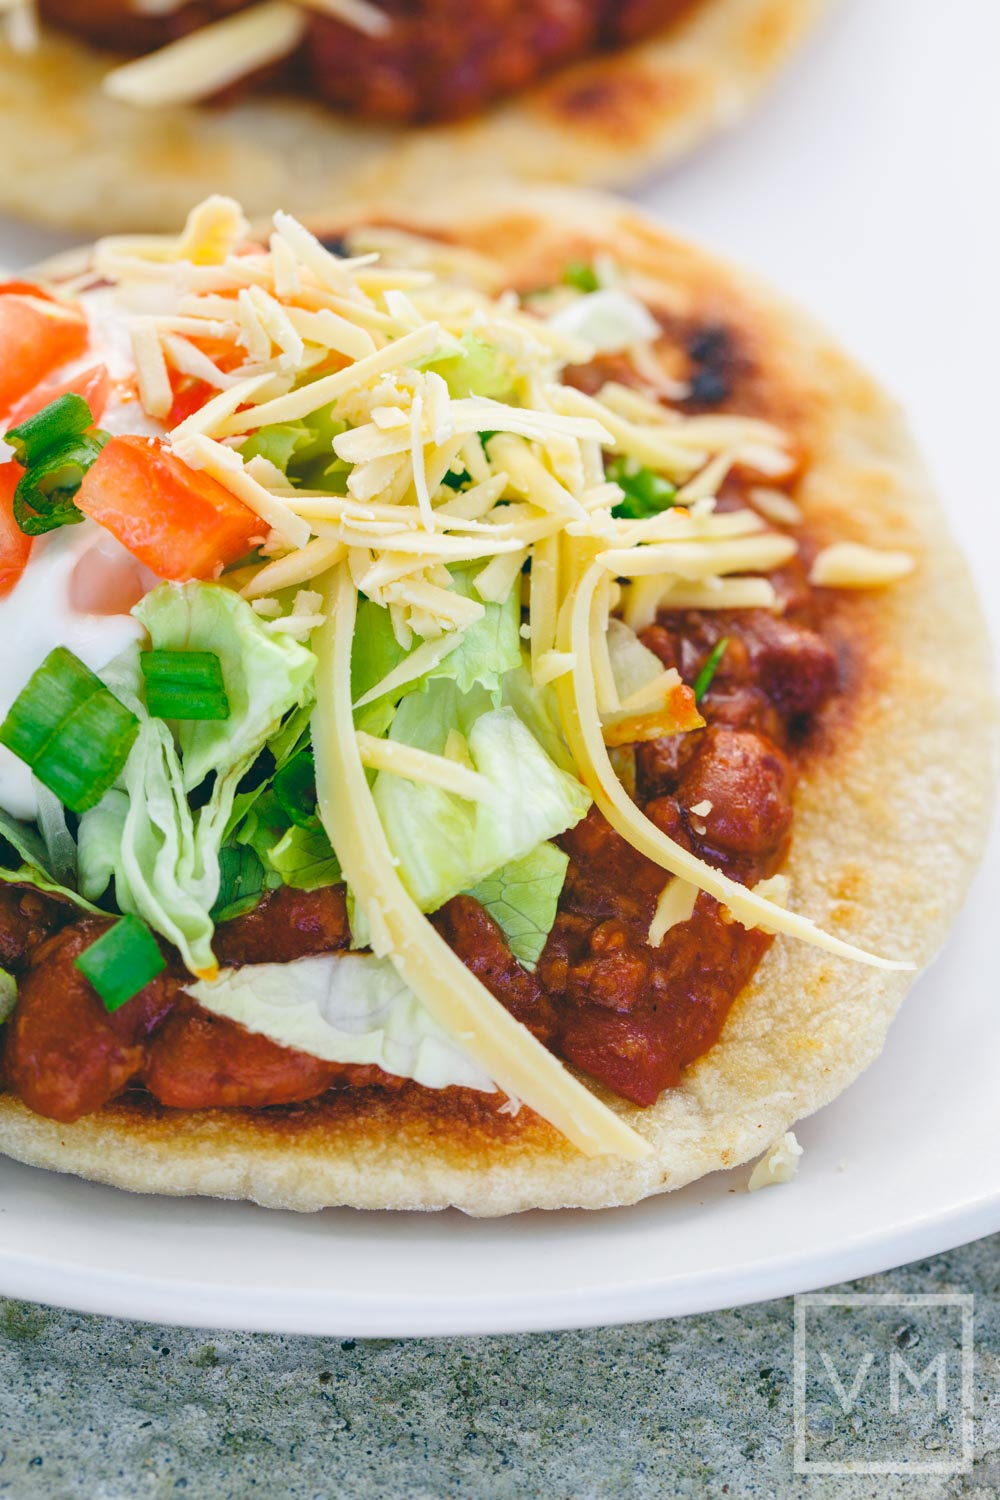 Vegan Indian Taco with Chili